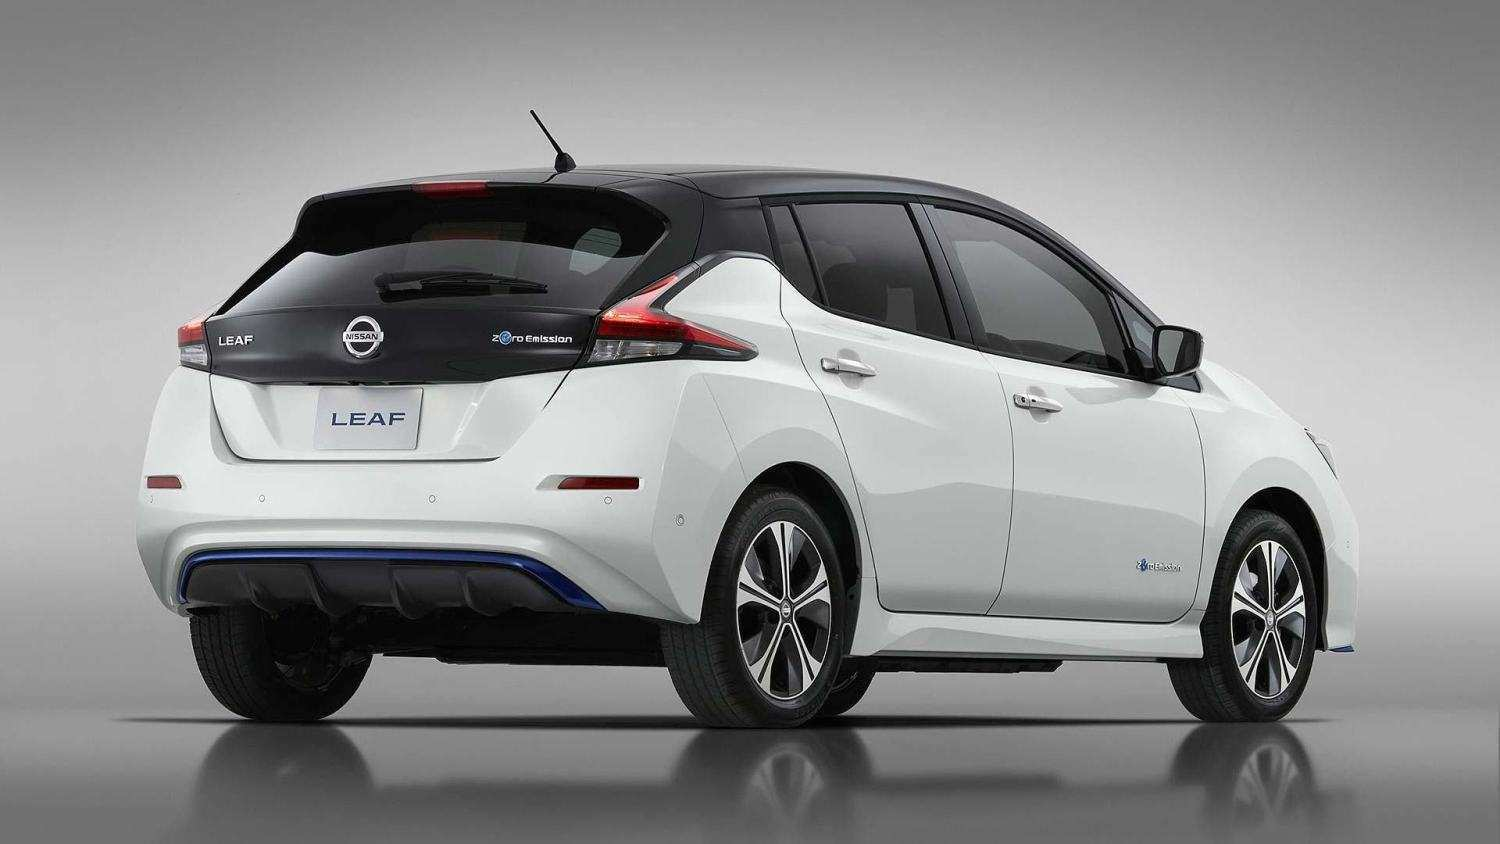 40 The Best 2019 Nissan Leaf Range Release Date